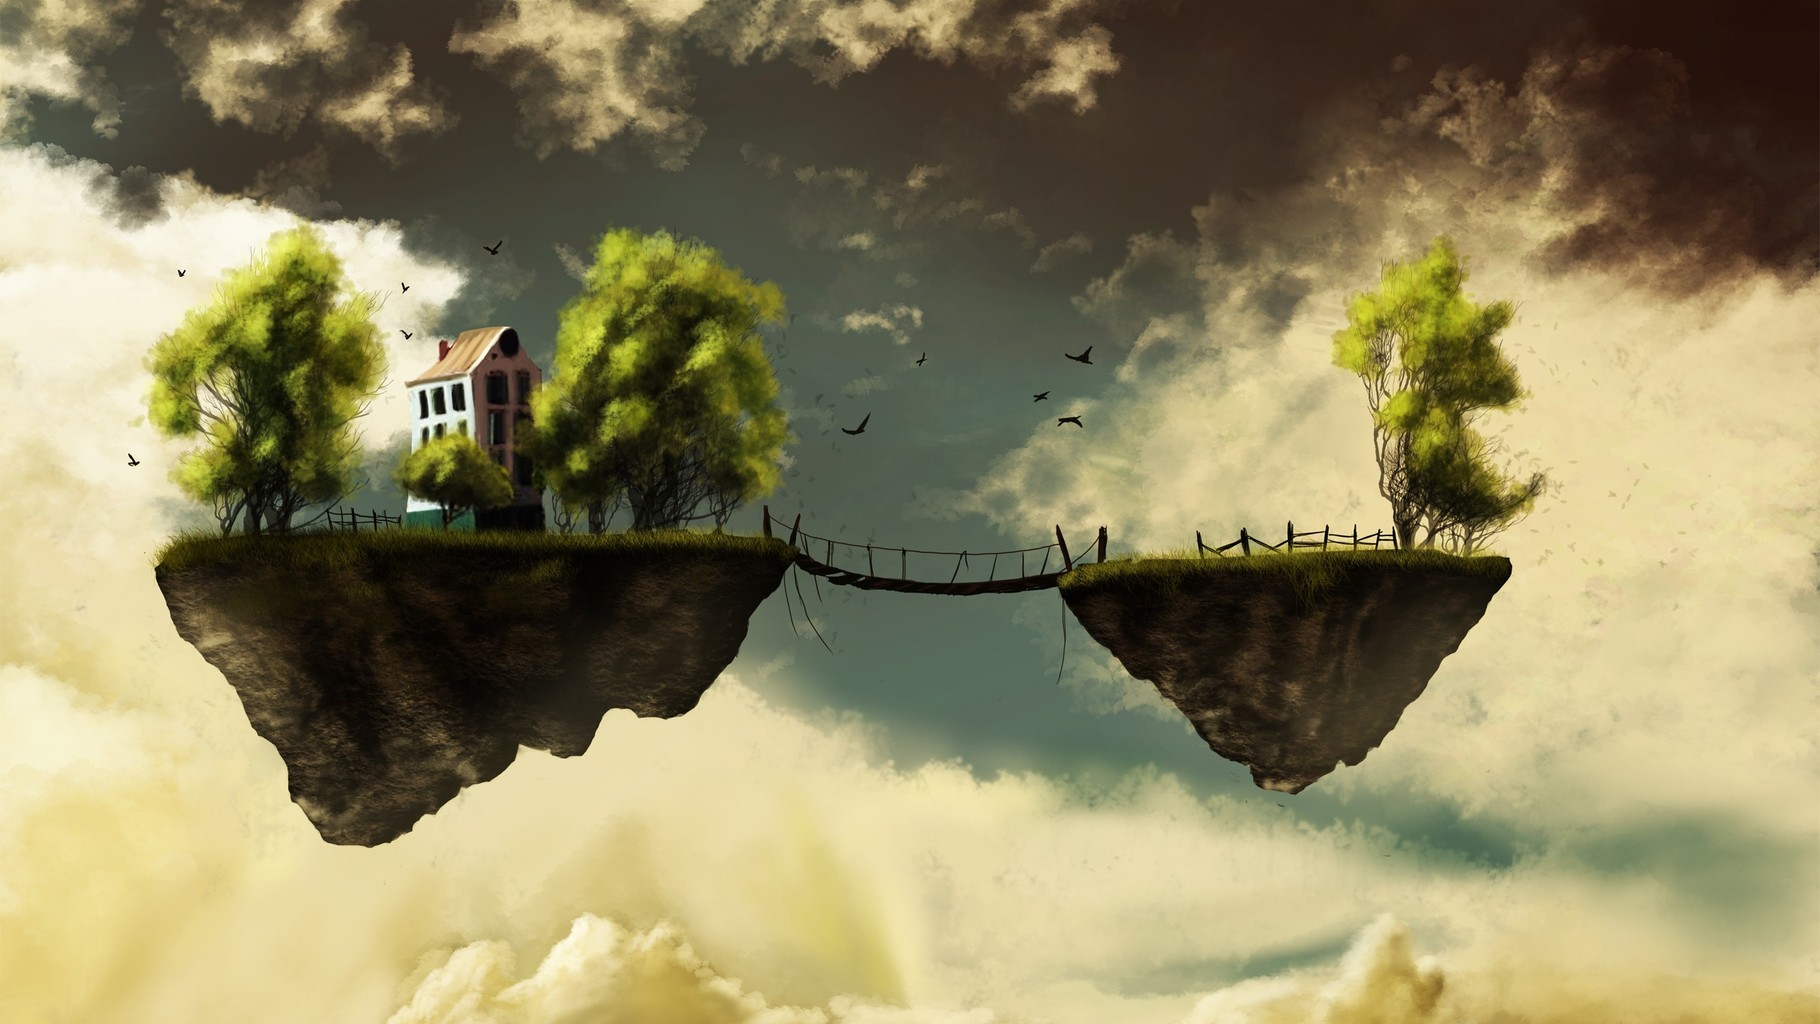 Bridge of Floating islands landscapes